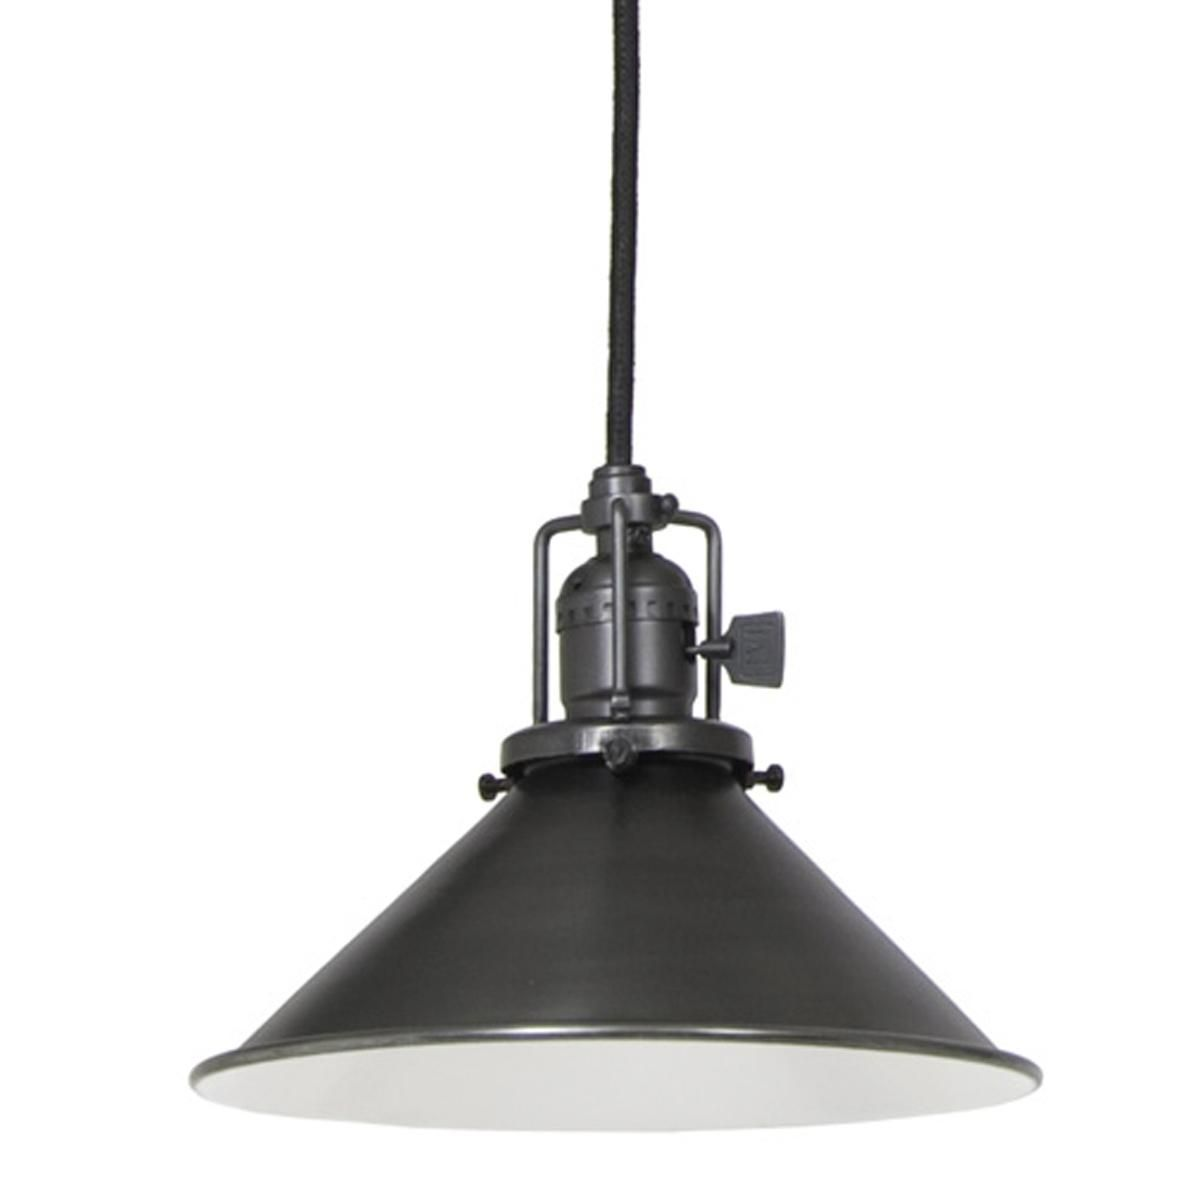 Kitchen Sink Pendant Light Aid Artisan Stand Mixer Cone Shade Industrial Gunmetal Two Over The